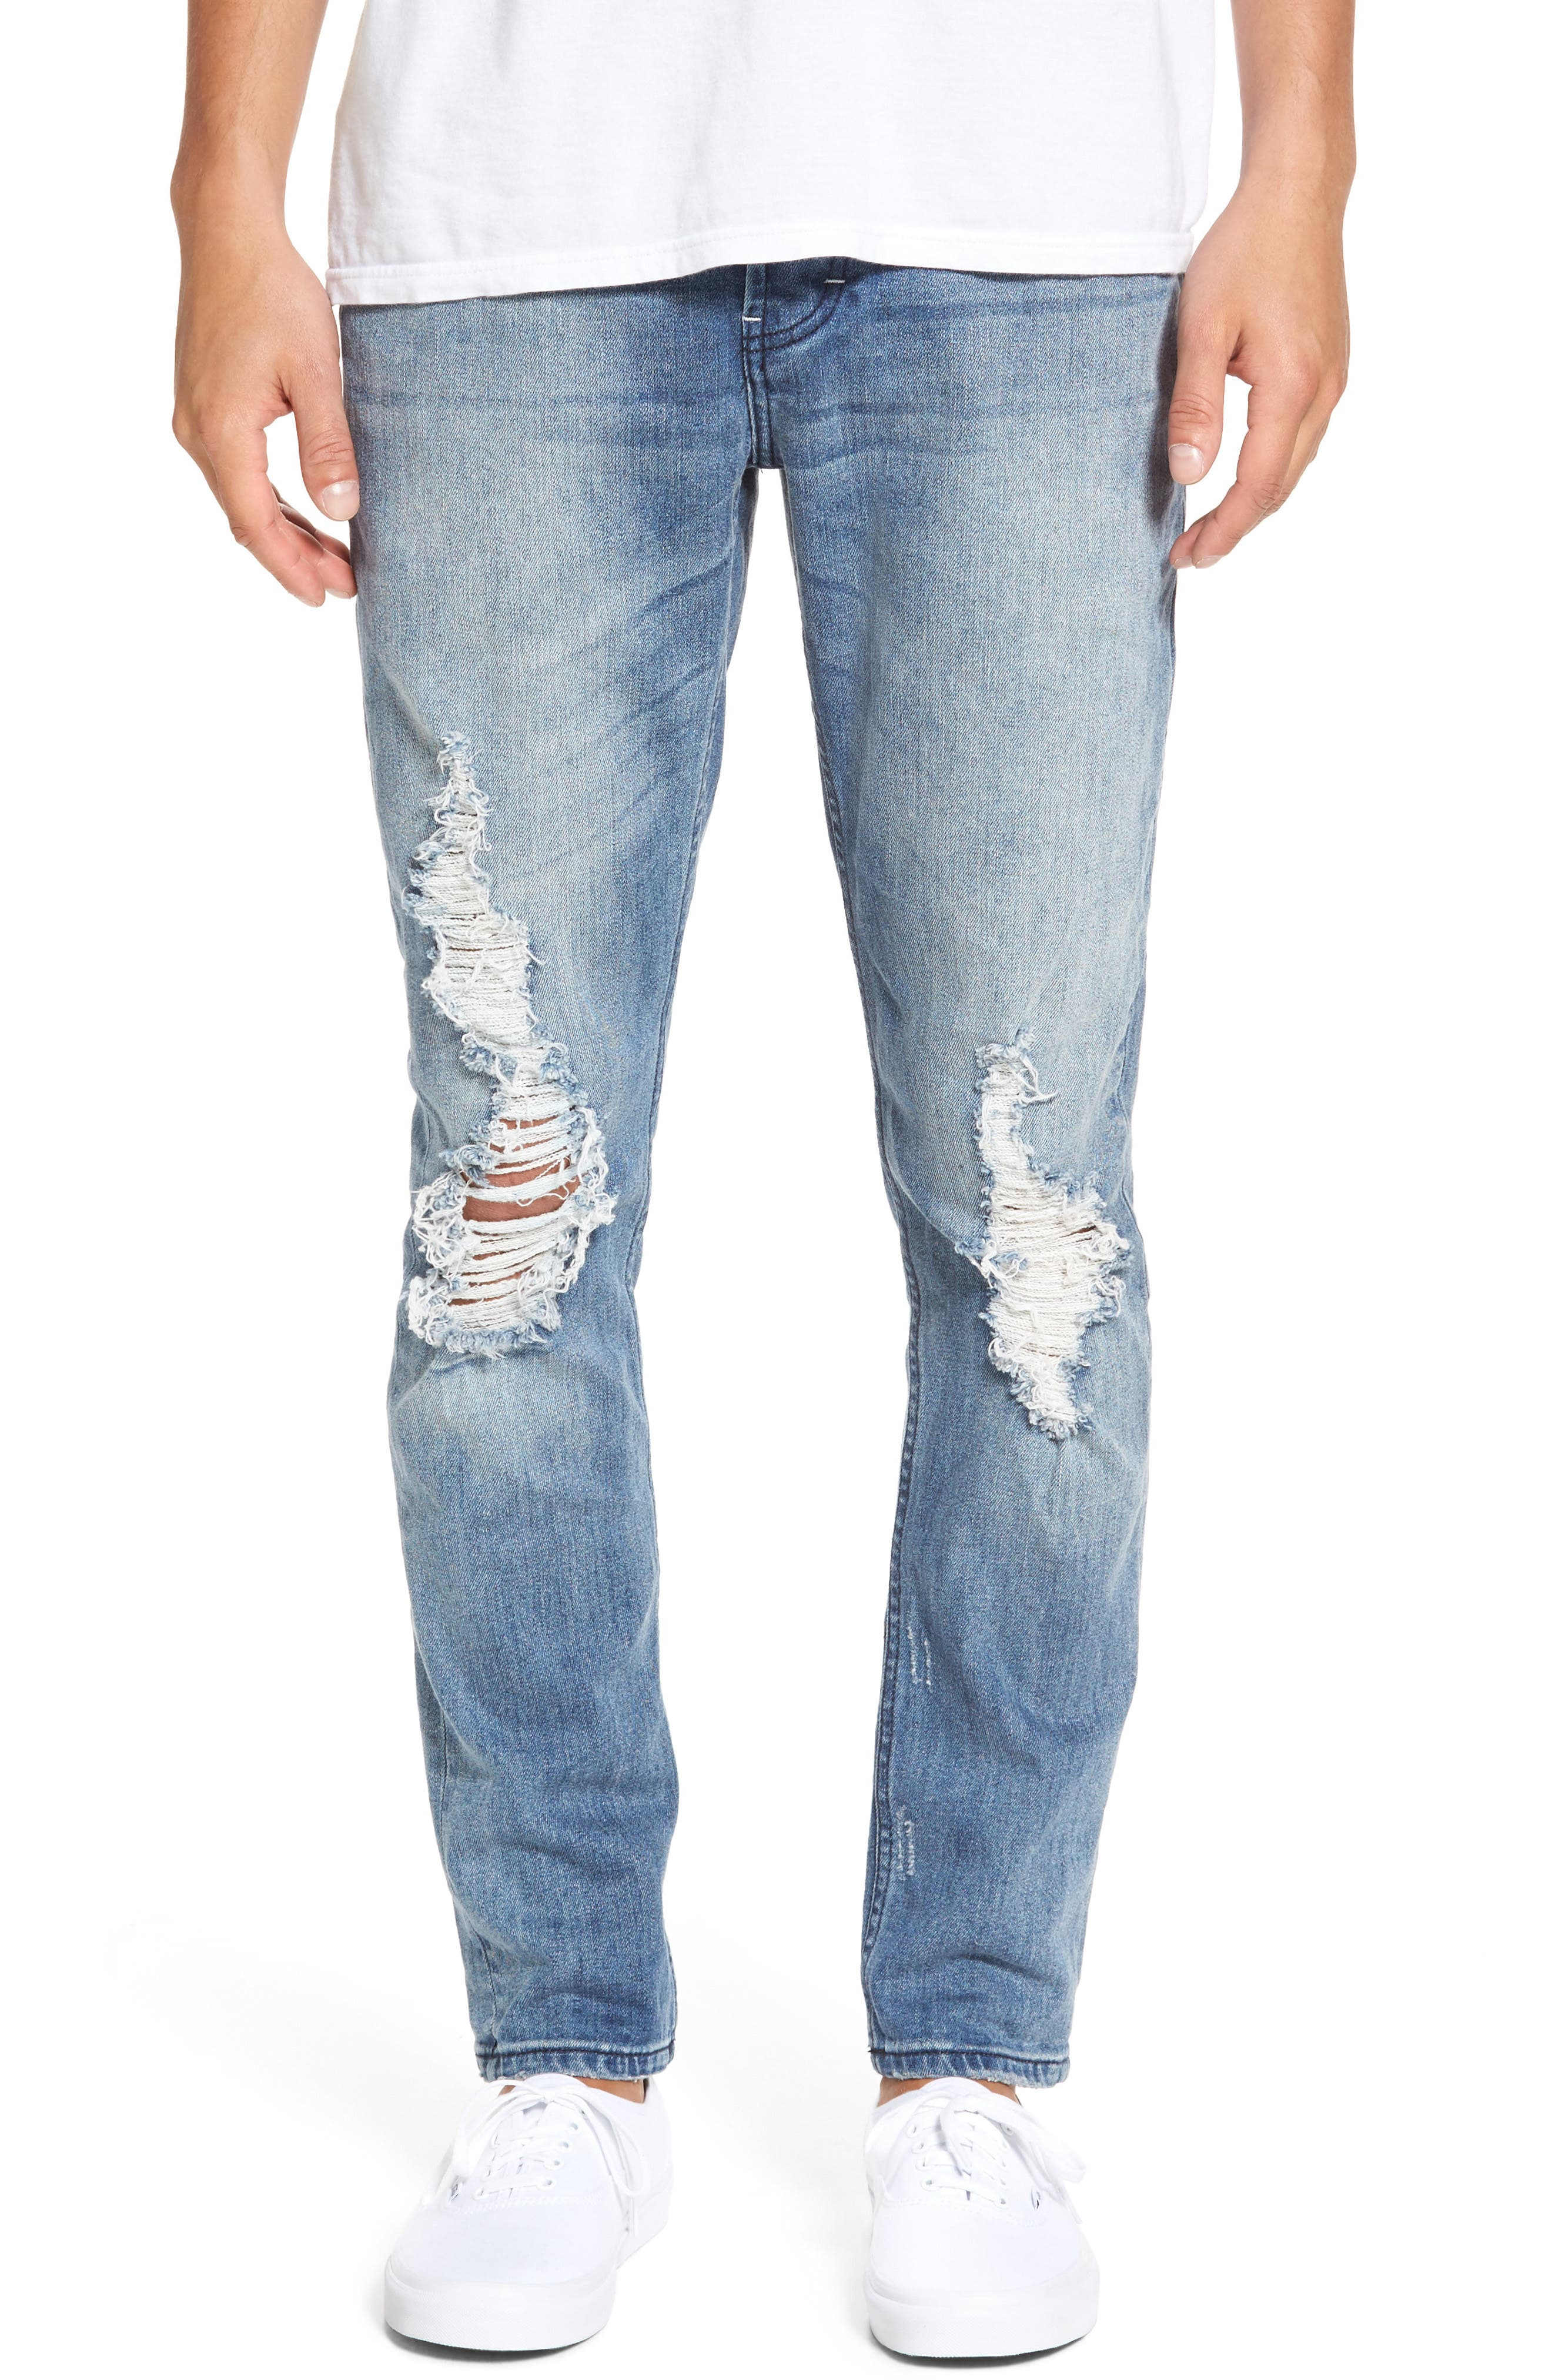 Barney Cools B.Line Slim Fit Jeans (Blow Out Stonewash)